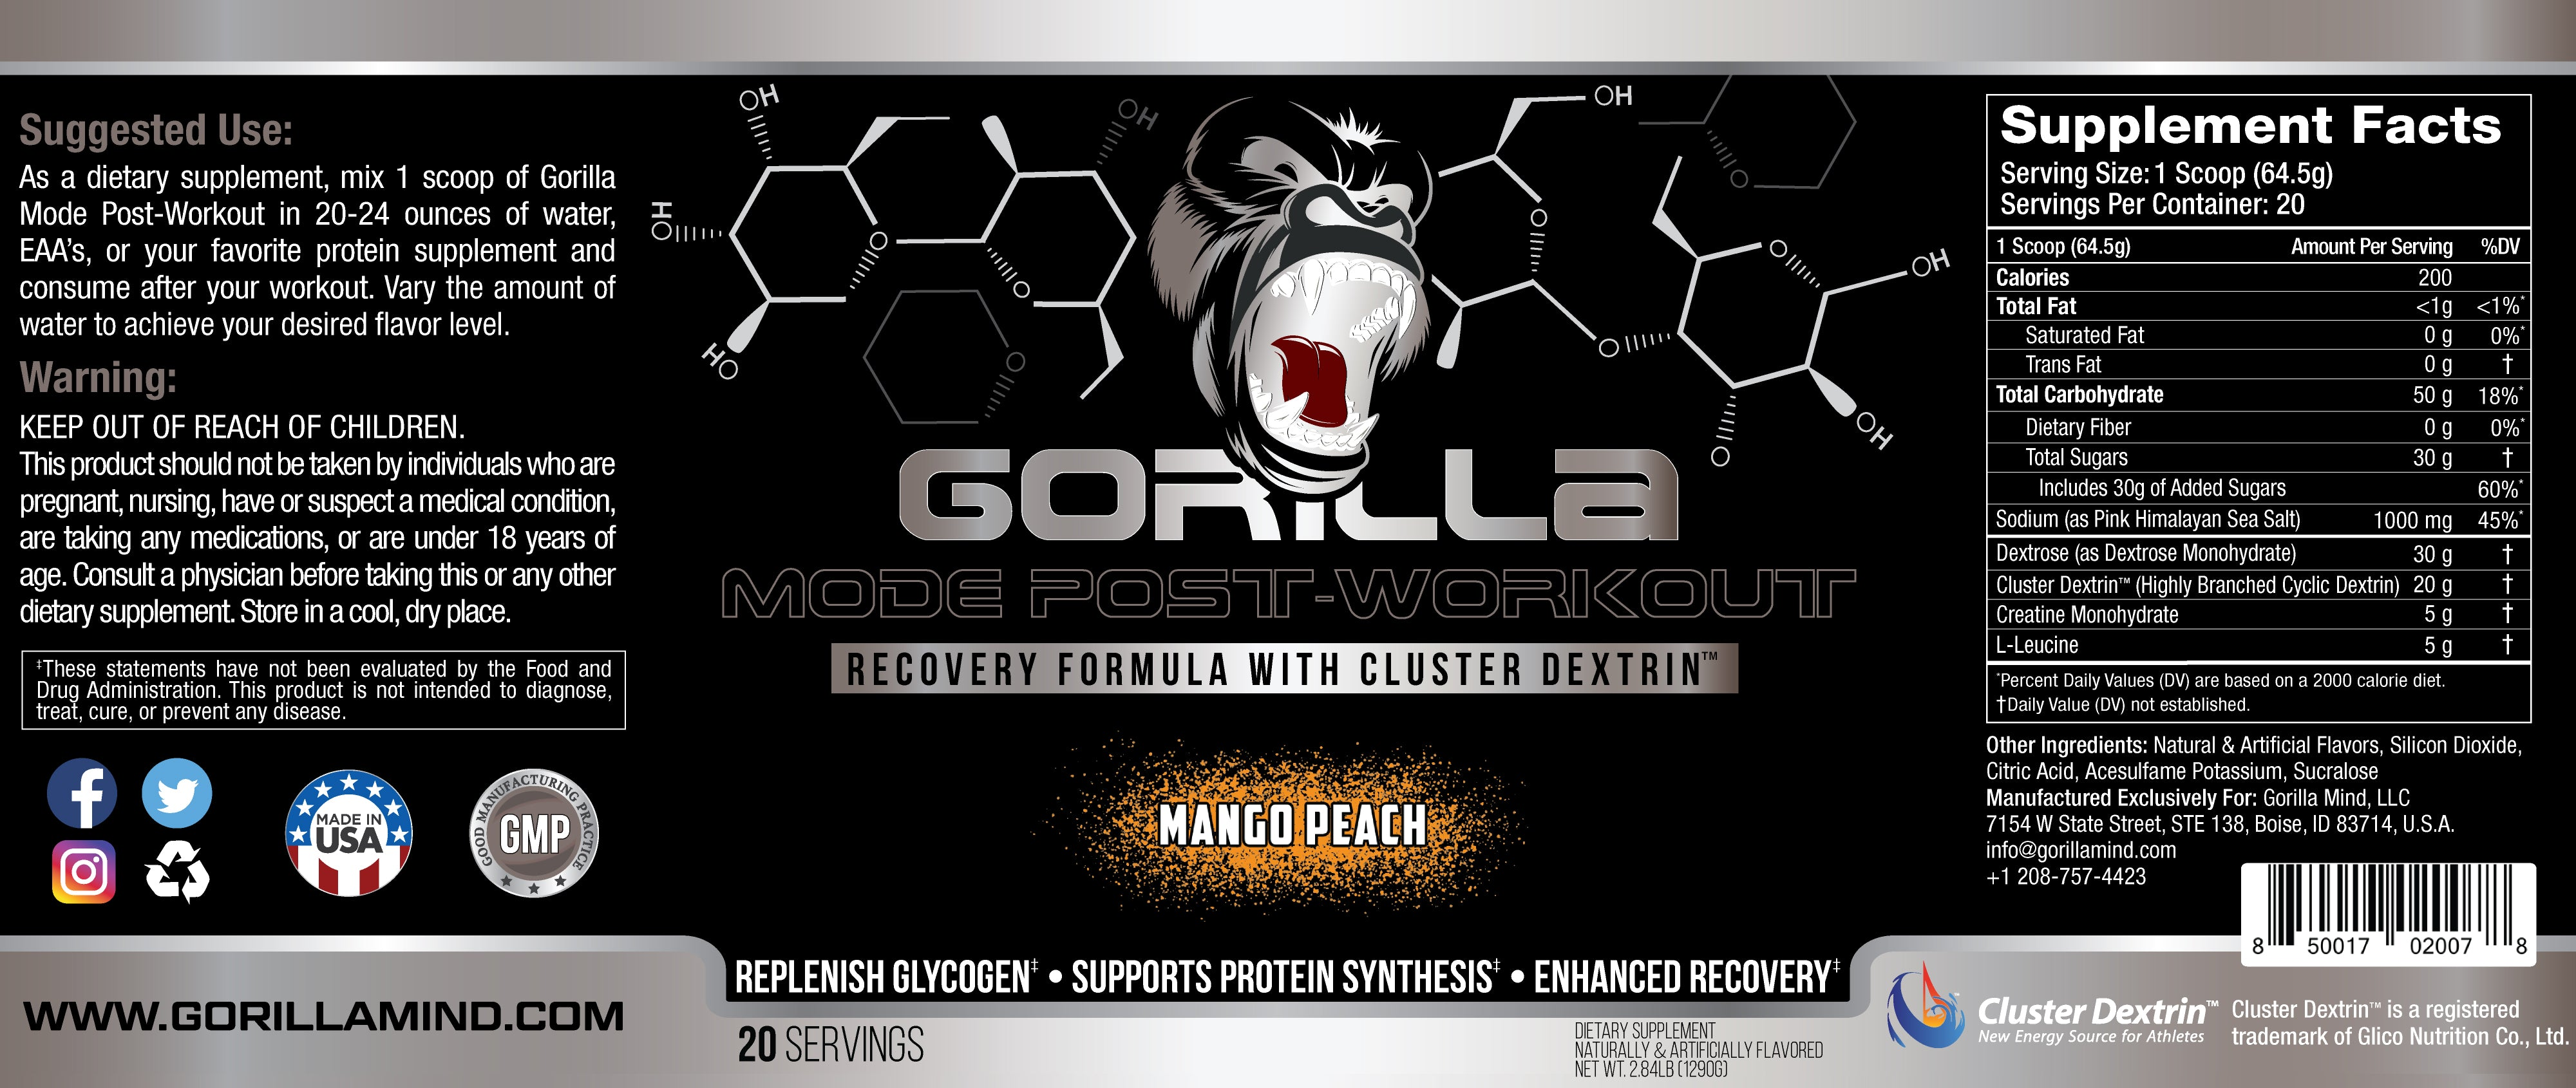 Gorilla Mode Post-Workout Supplement Facts